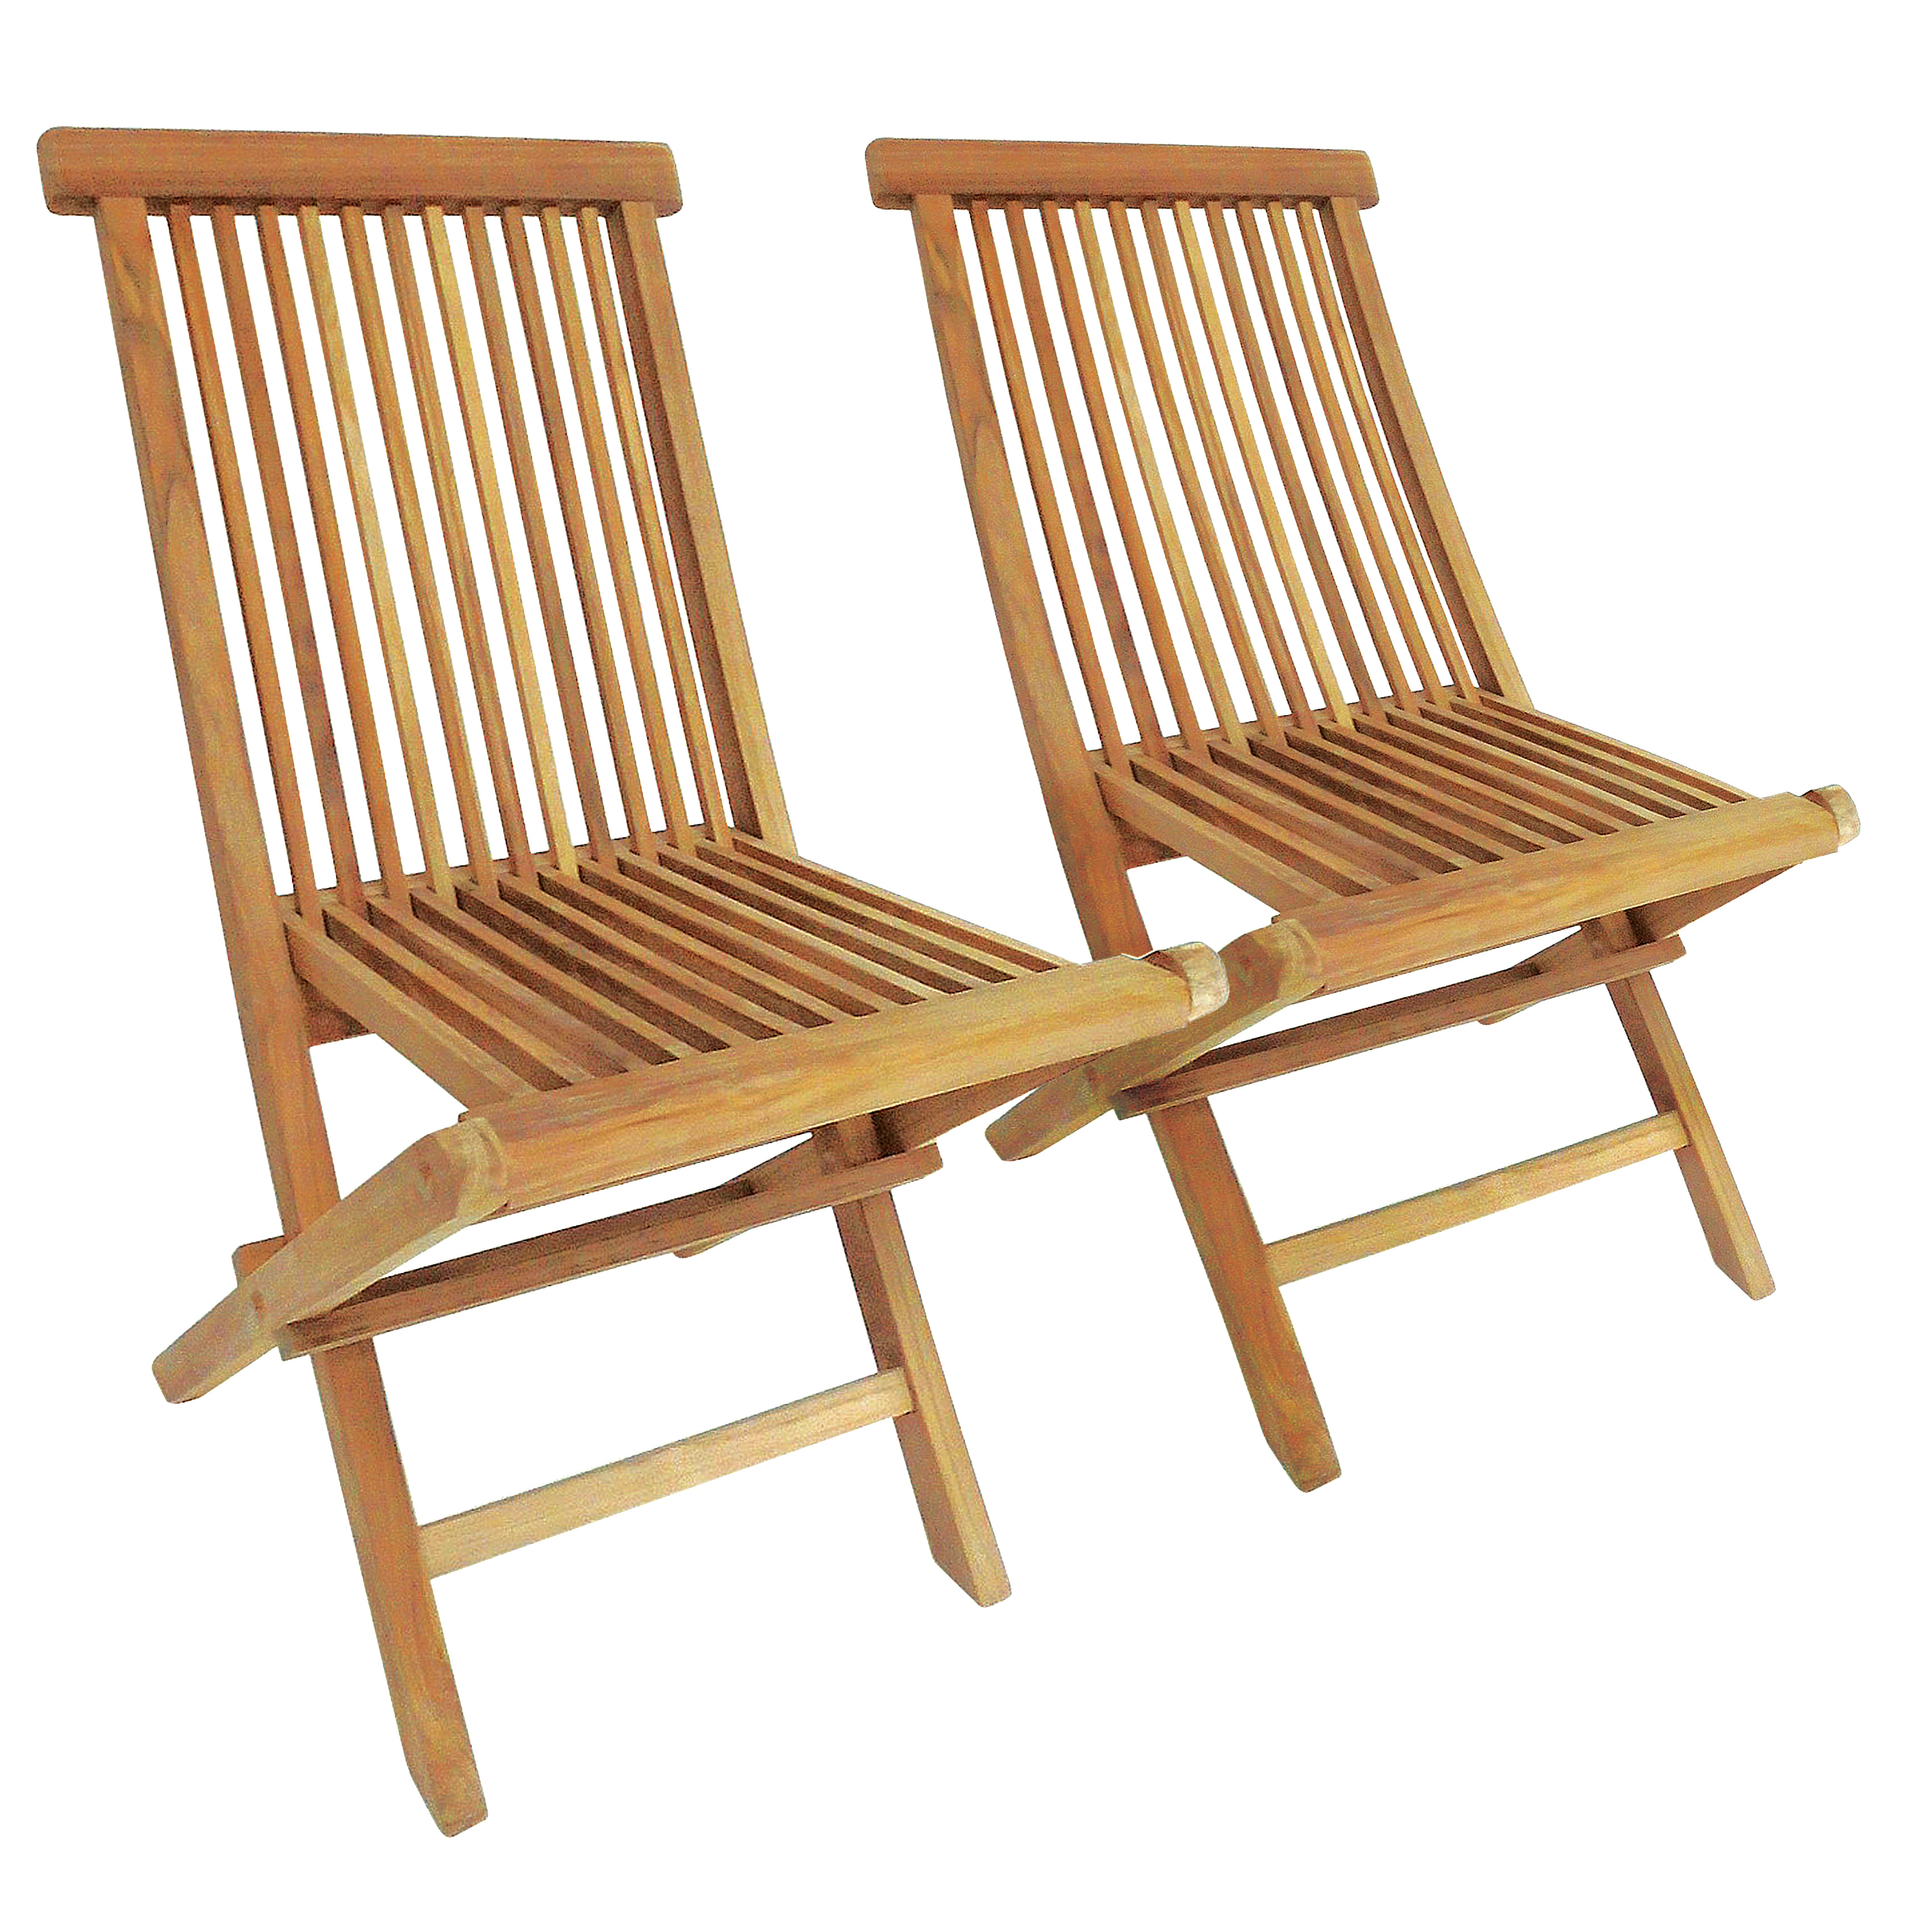 Outdoor Folding Chairs Charles Bentley Pair Of Solid Wooden Teak Outdoor Folding